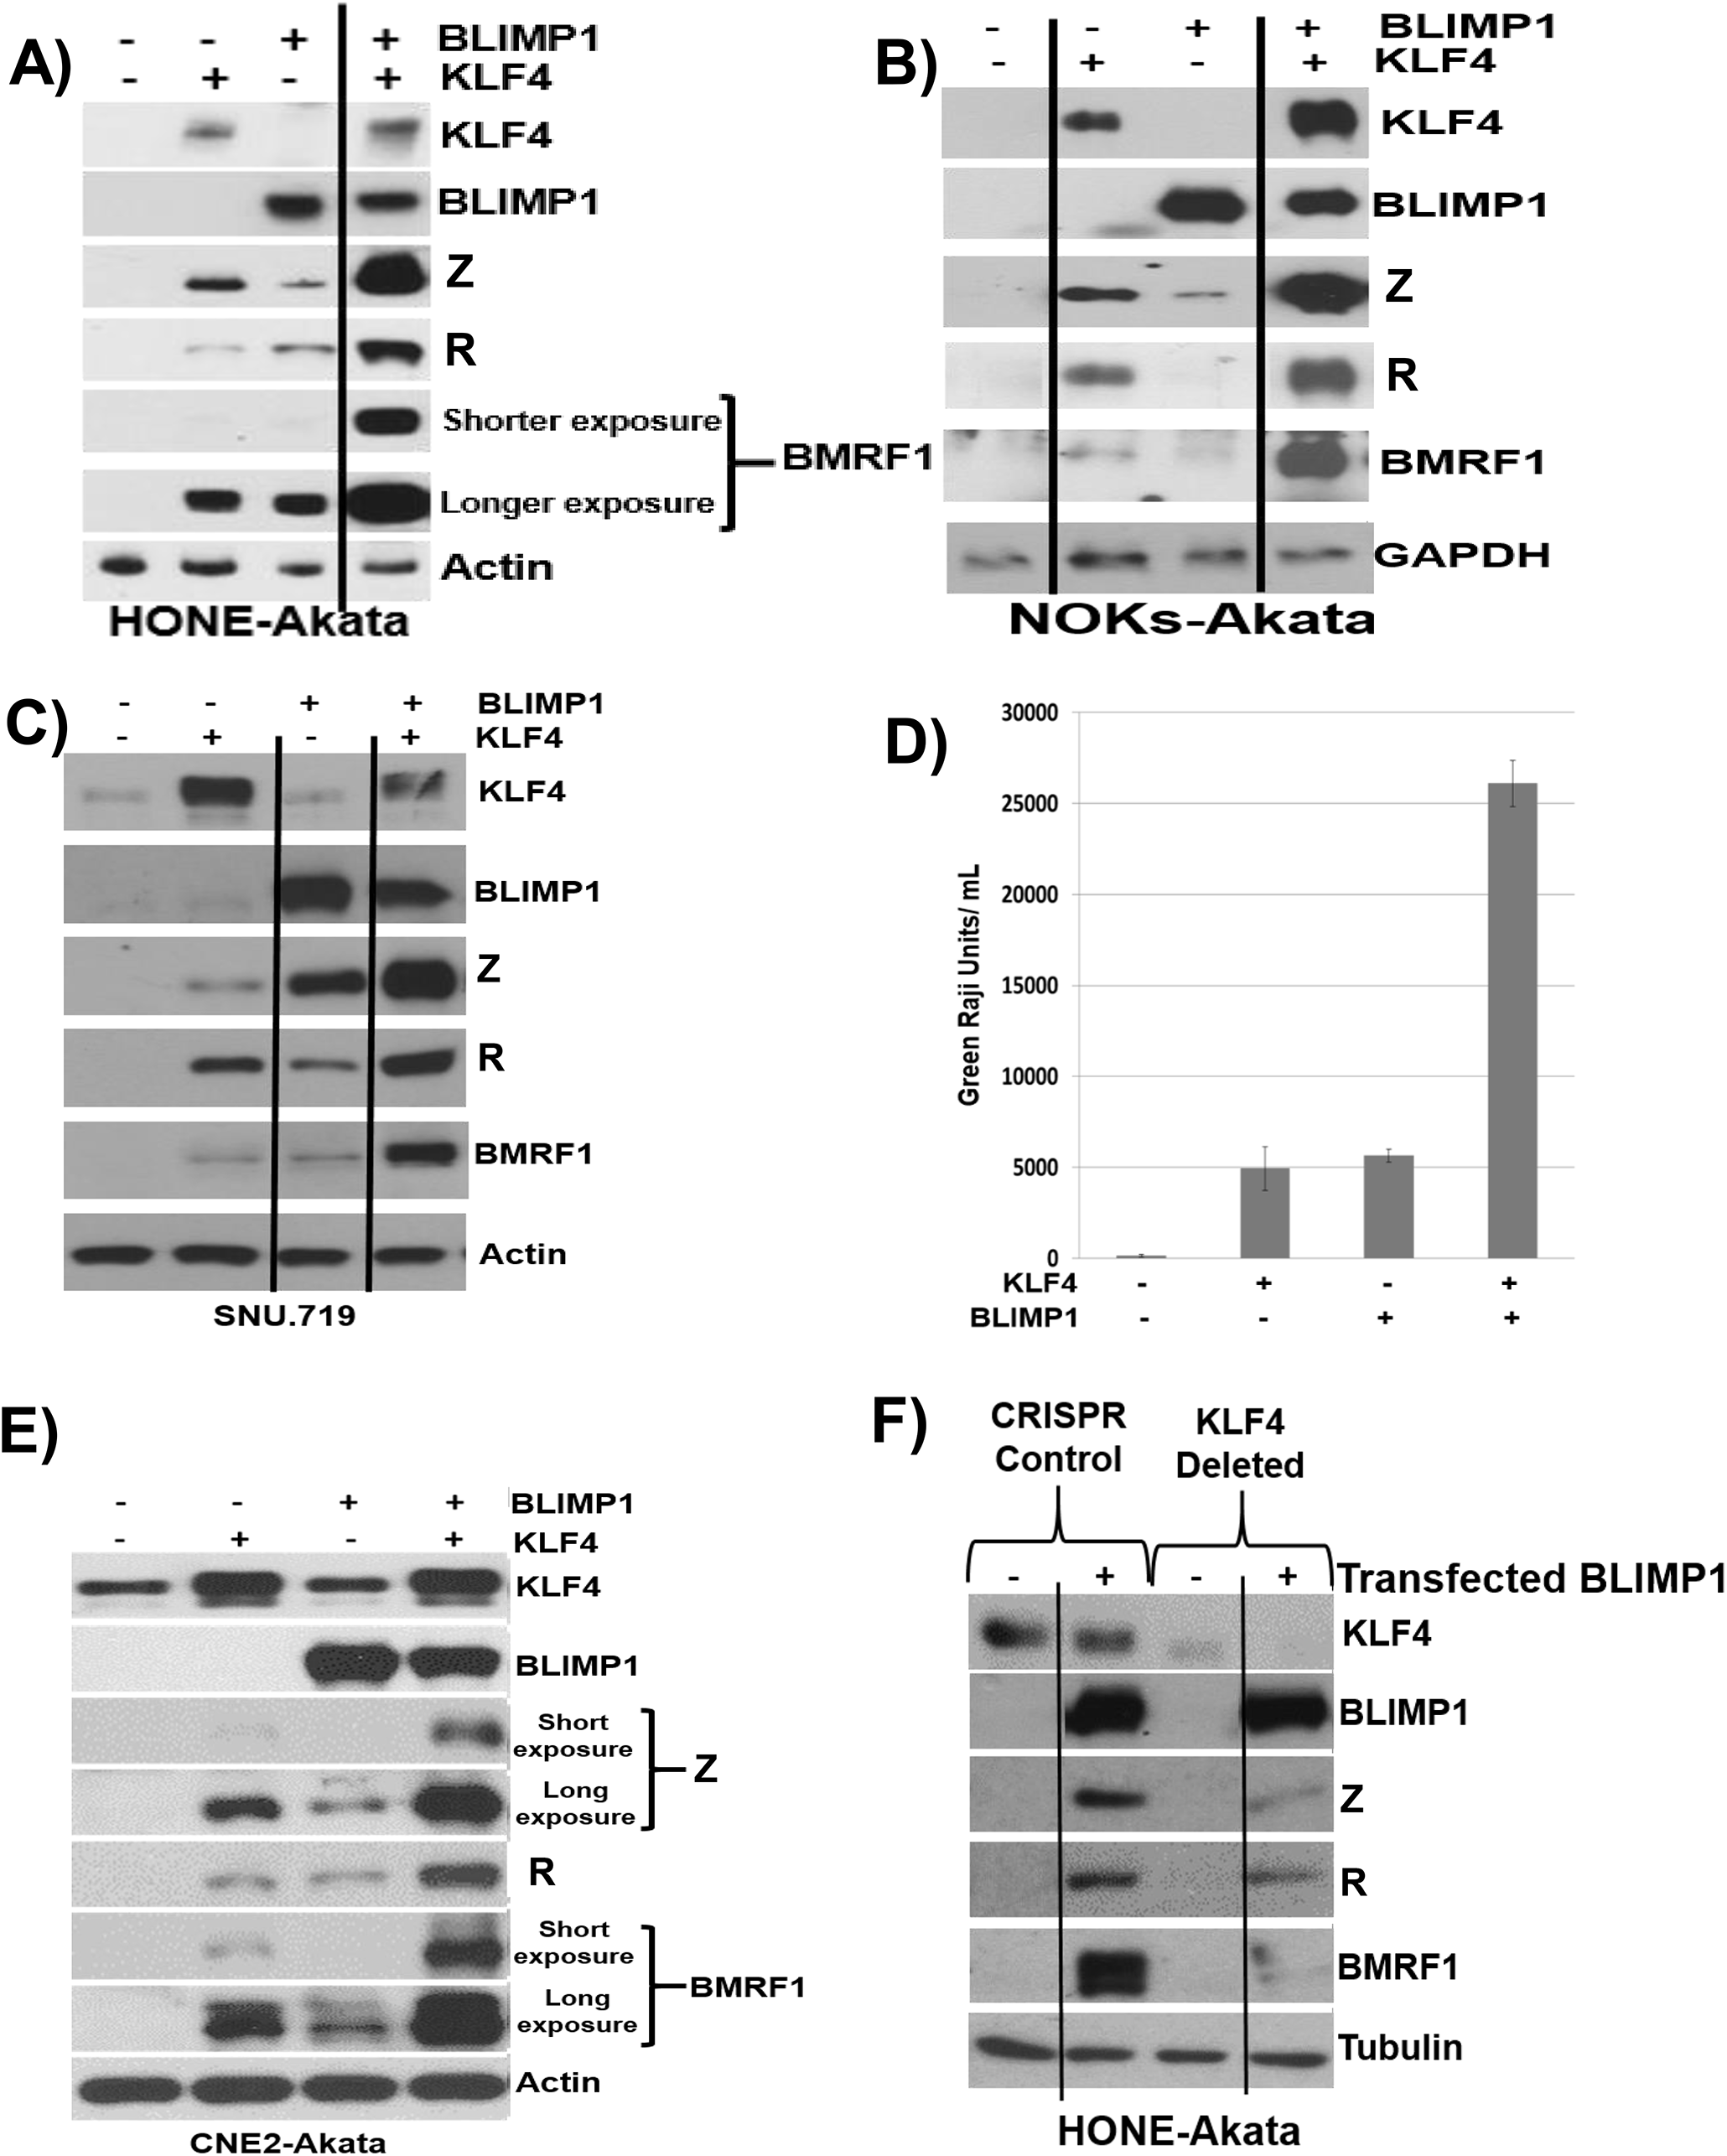 KLF4 synergizes with BLIMP1 to induce lytic EBV reactivation and replication in latently infected epithelial cells.